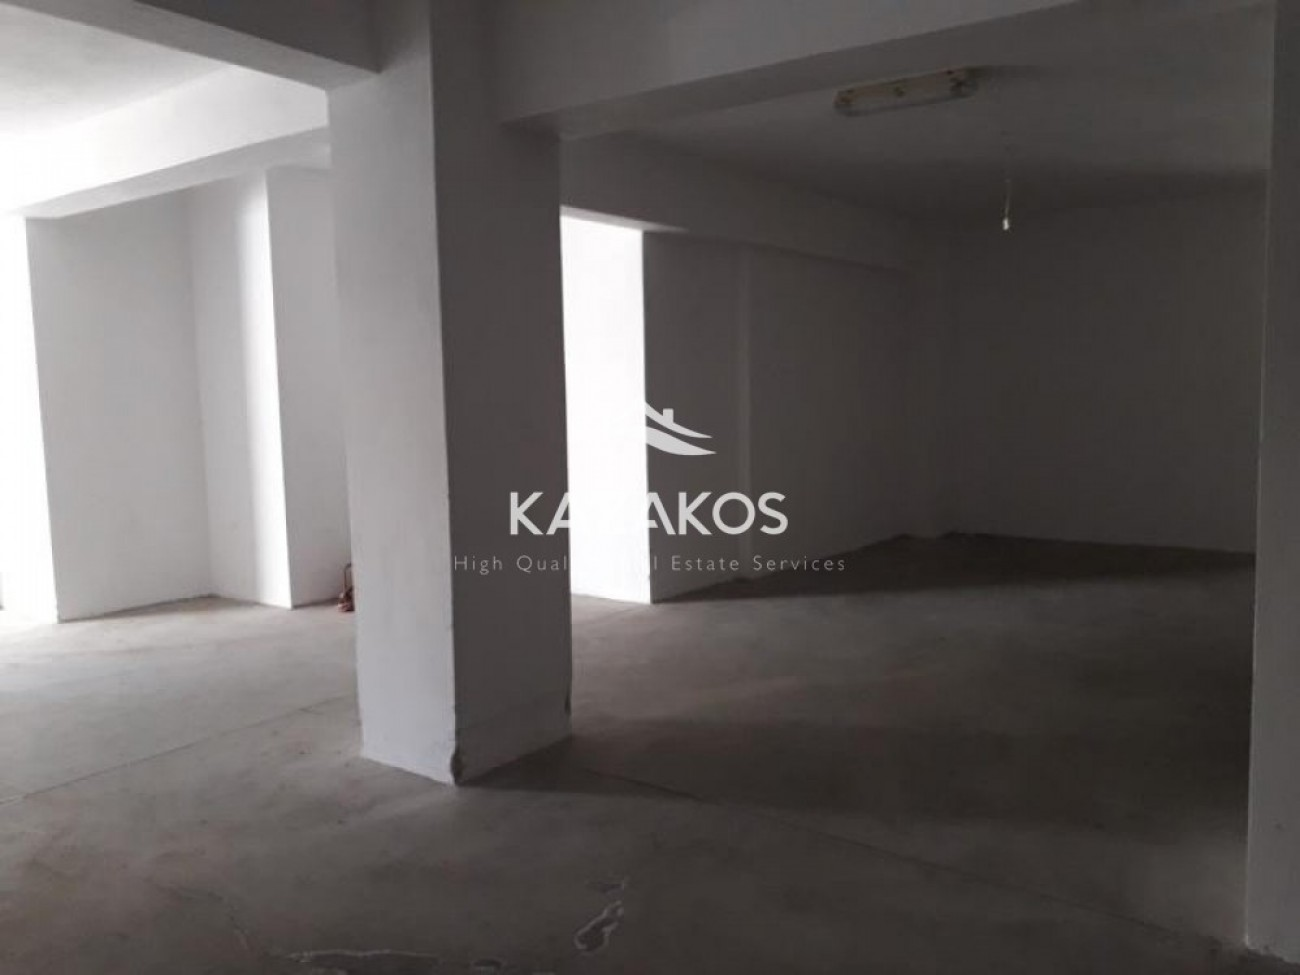 Commercial Other for Sale in Ilioupoli, Central & South Region of Athens, Greece